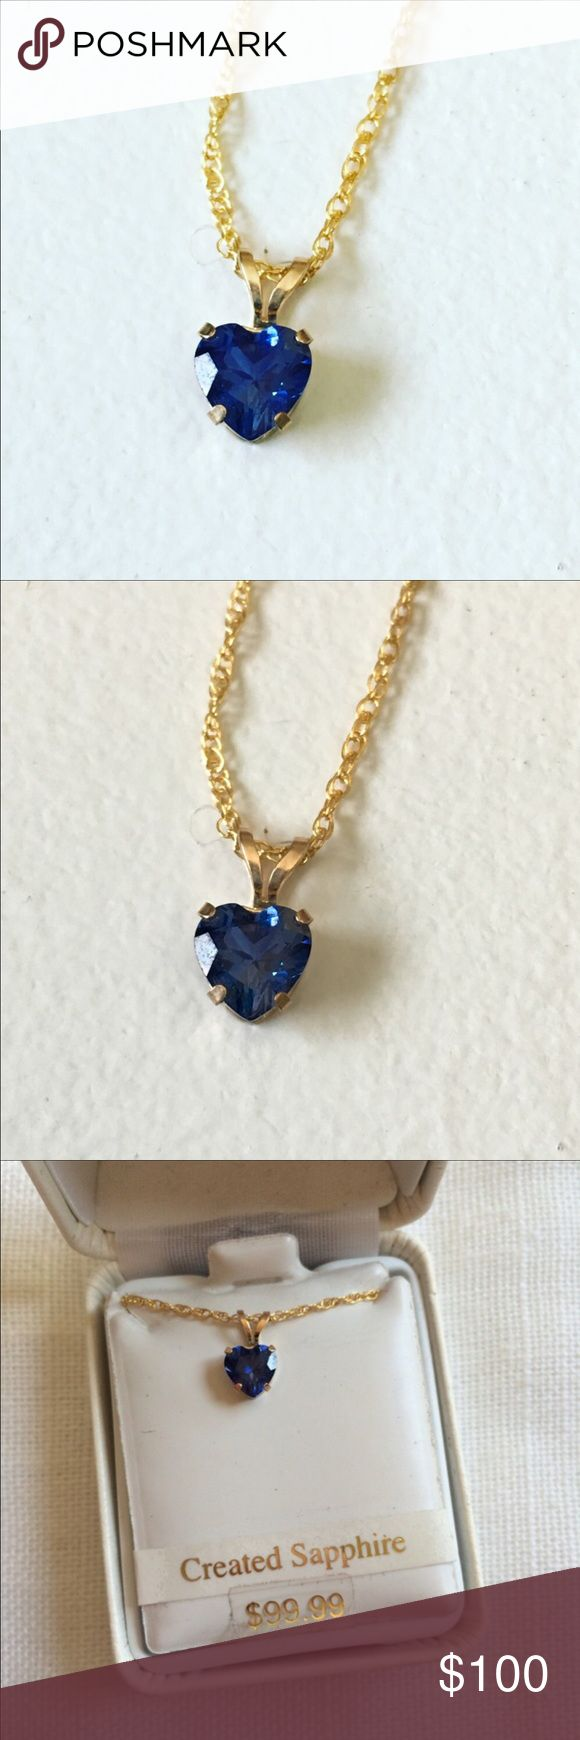 "NWT 10K Gold Filled Created Sapphire Necklace Brand new in box. 18"" chain. 10K gold filled. Heart-shaped created sapphire pendant. Jewelry Necklaces"